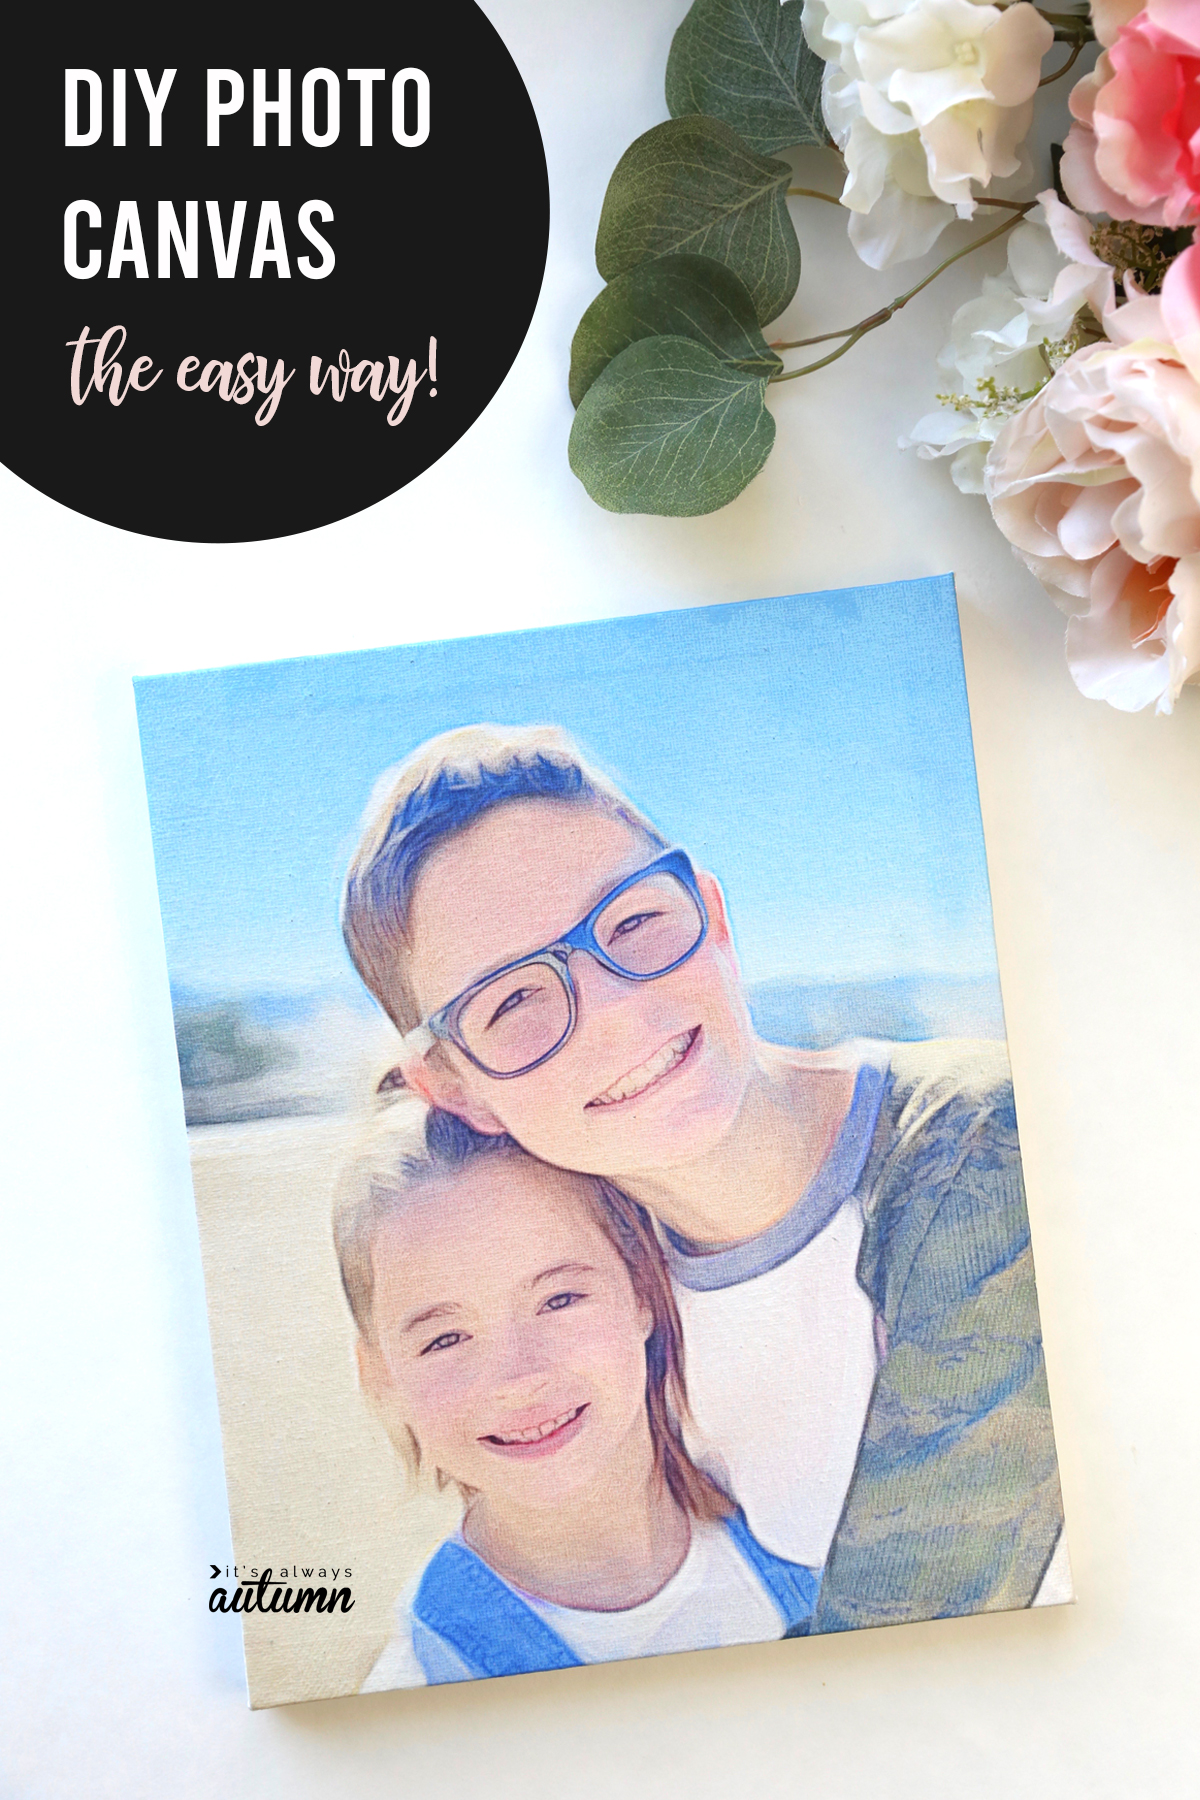 The is the EASIEST and most reliable way to transfer a photo to canvas!